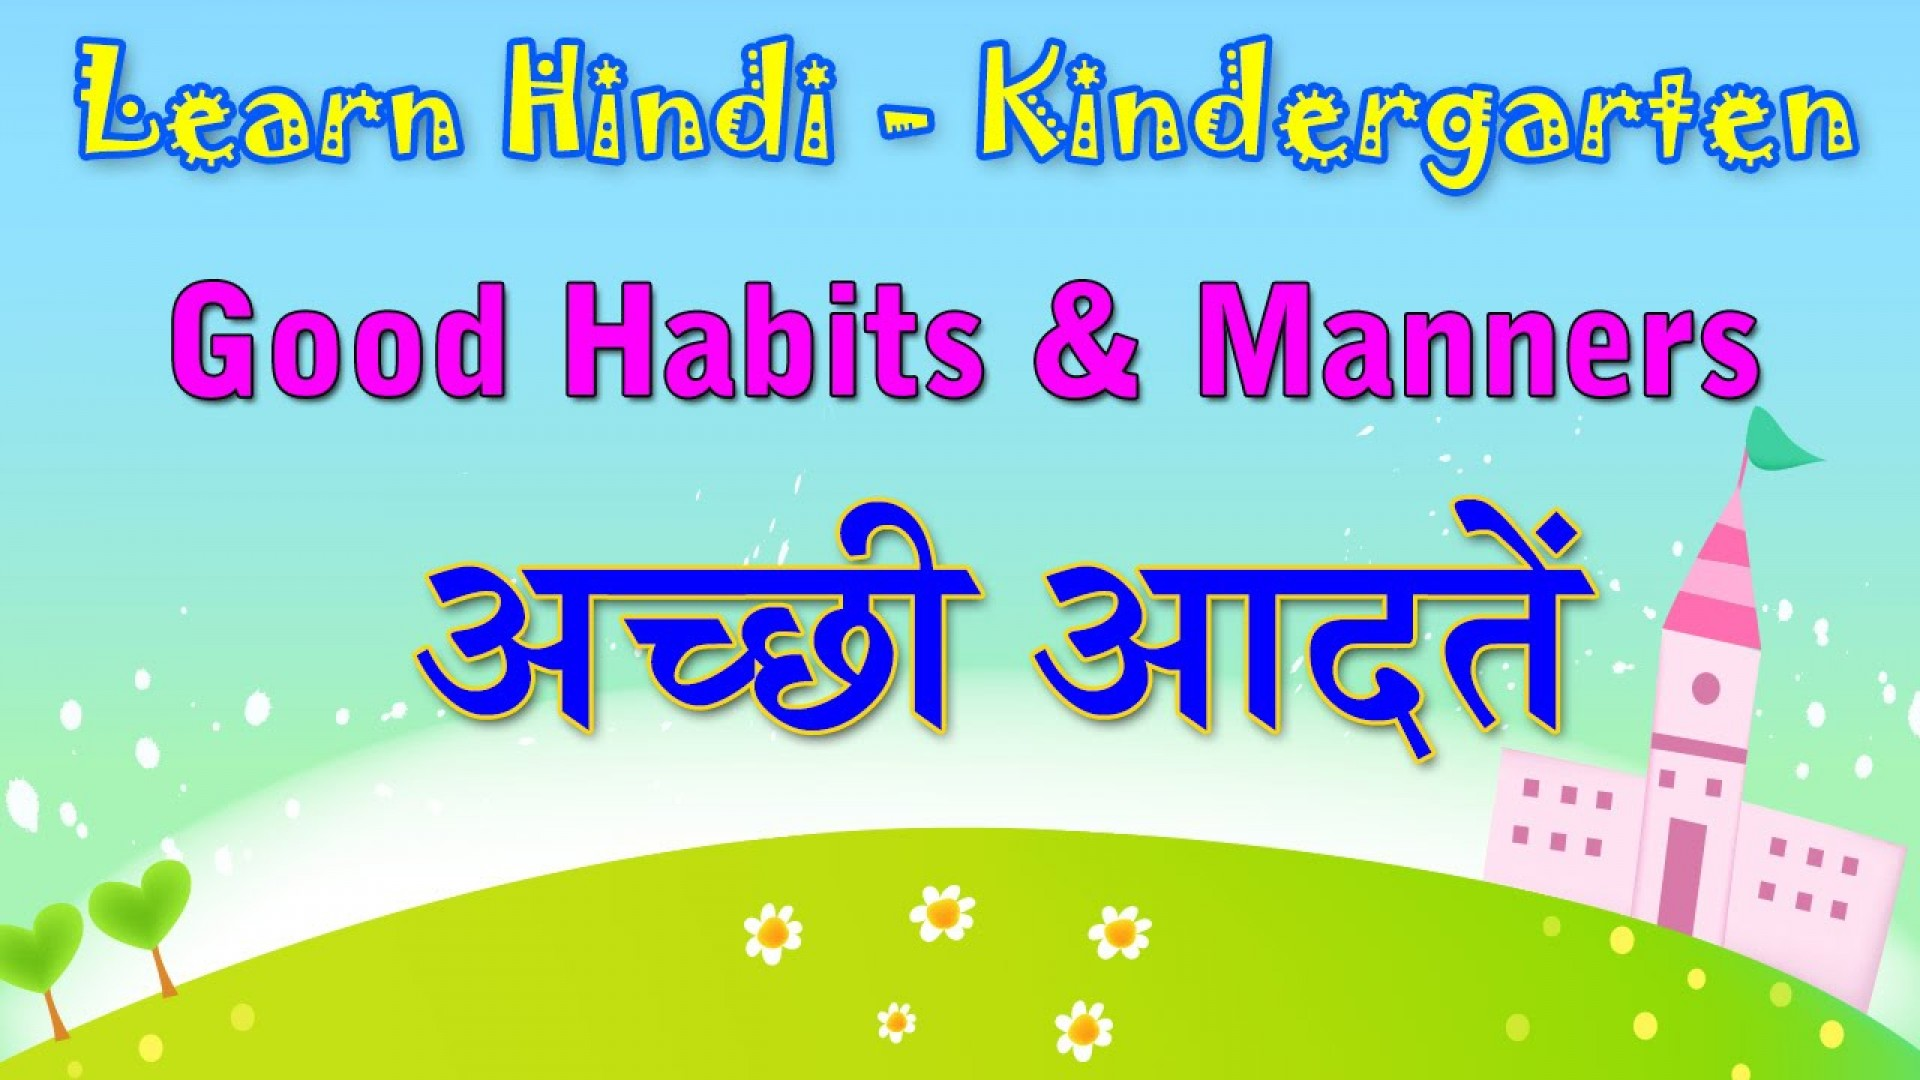 004 Essay Example Good Habits In Hindi Exceptional Reading Habit Wikipedia 1920